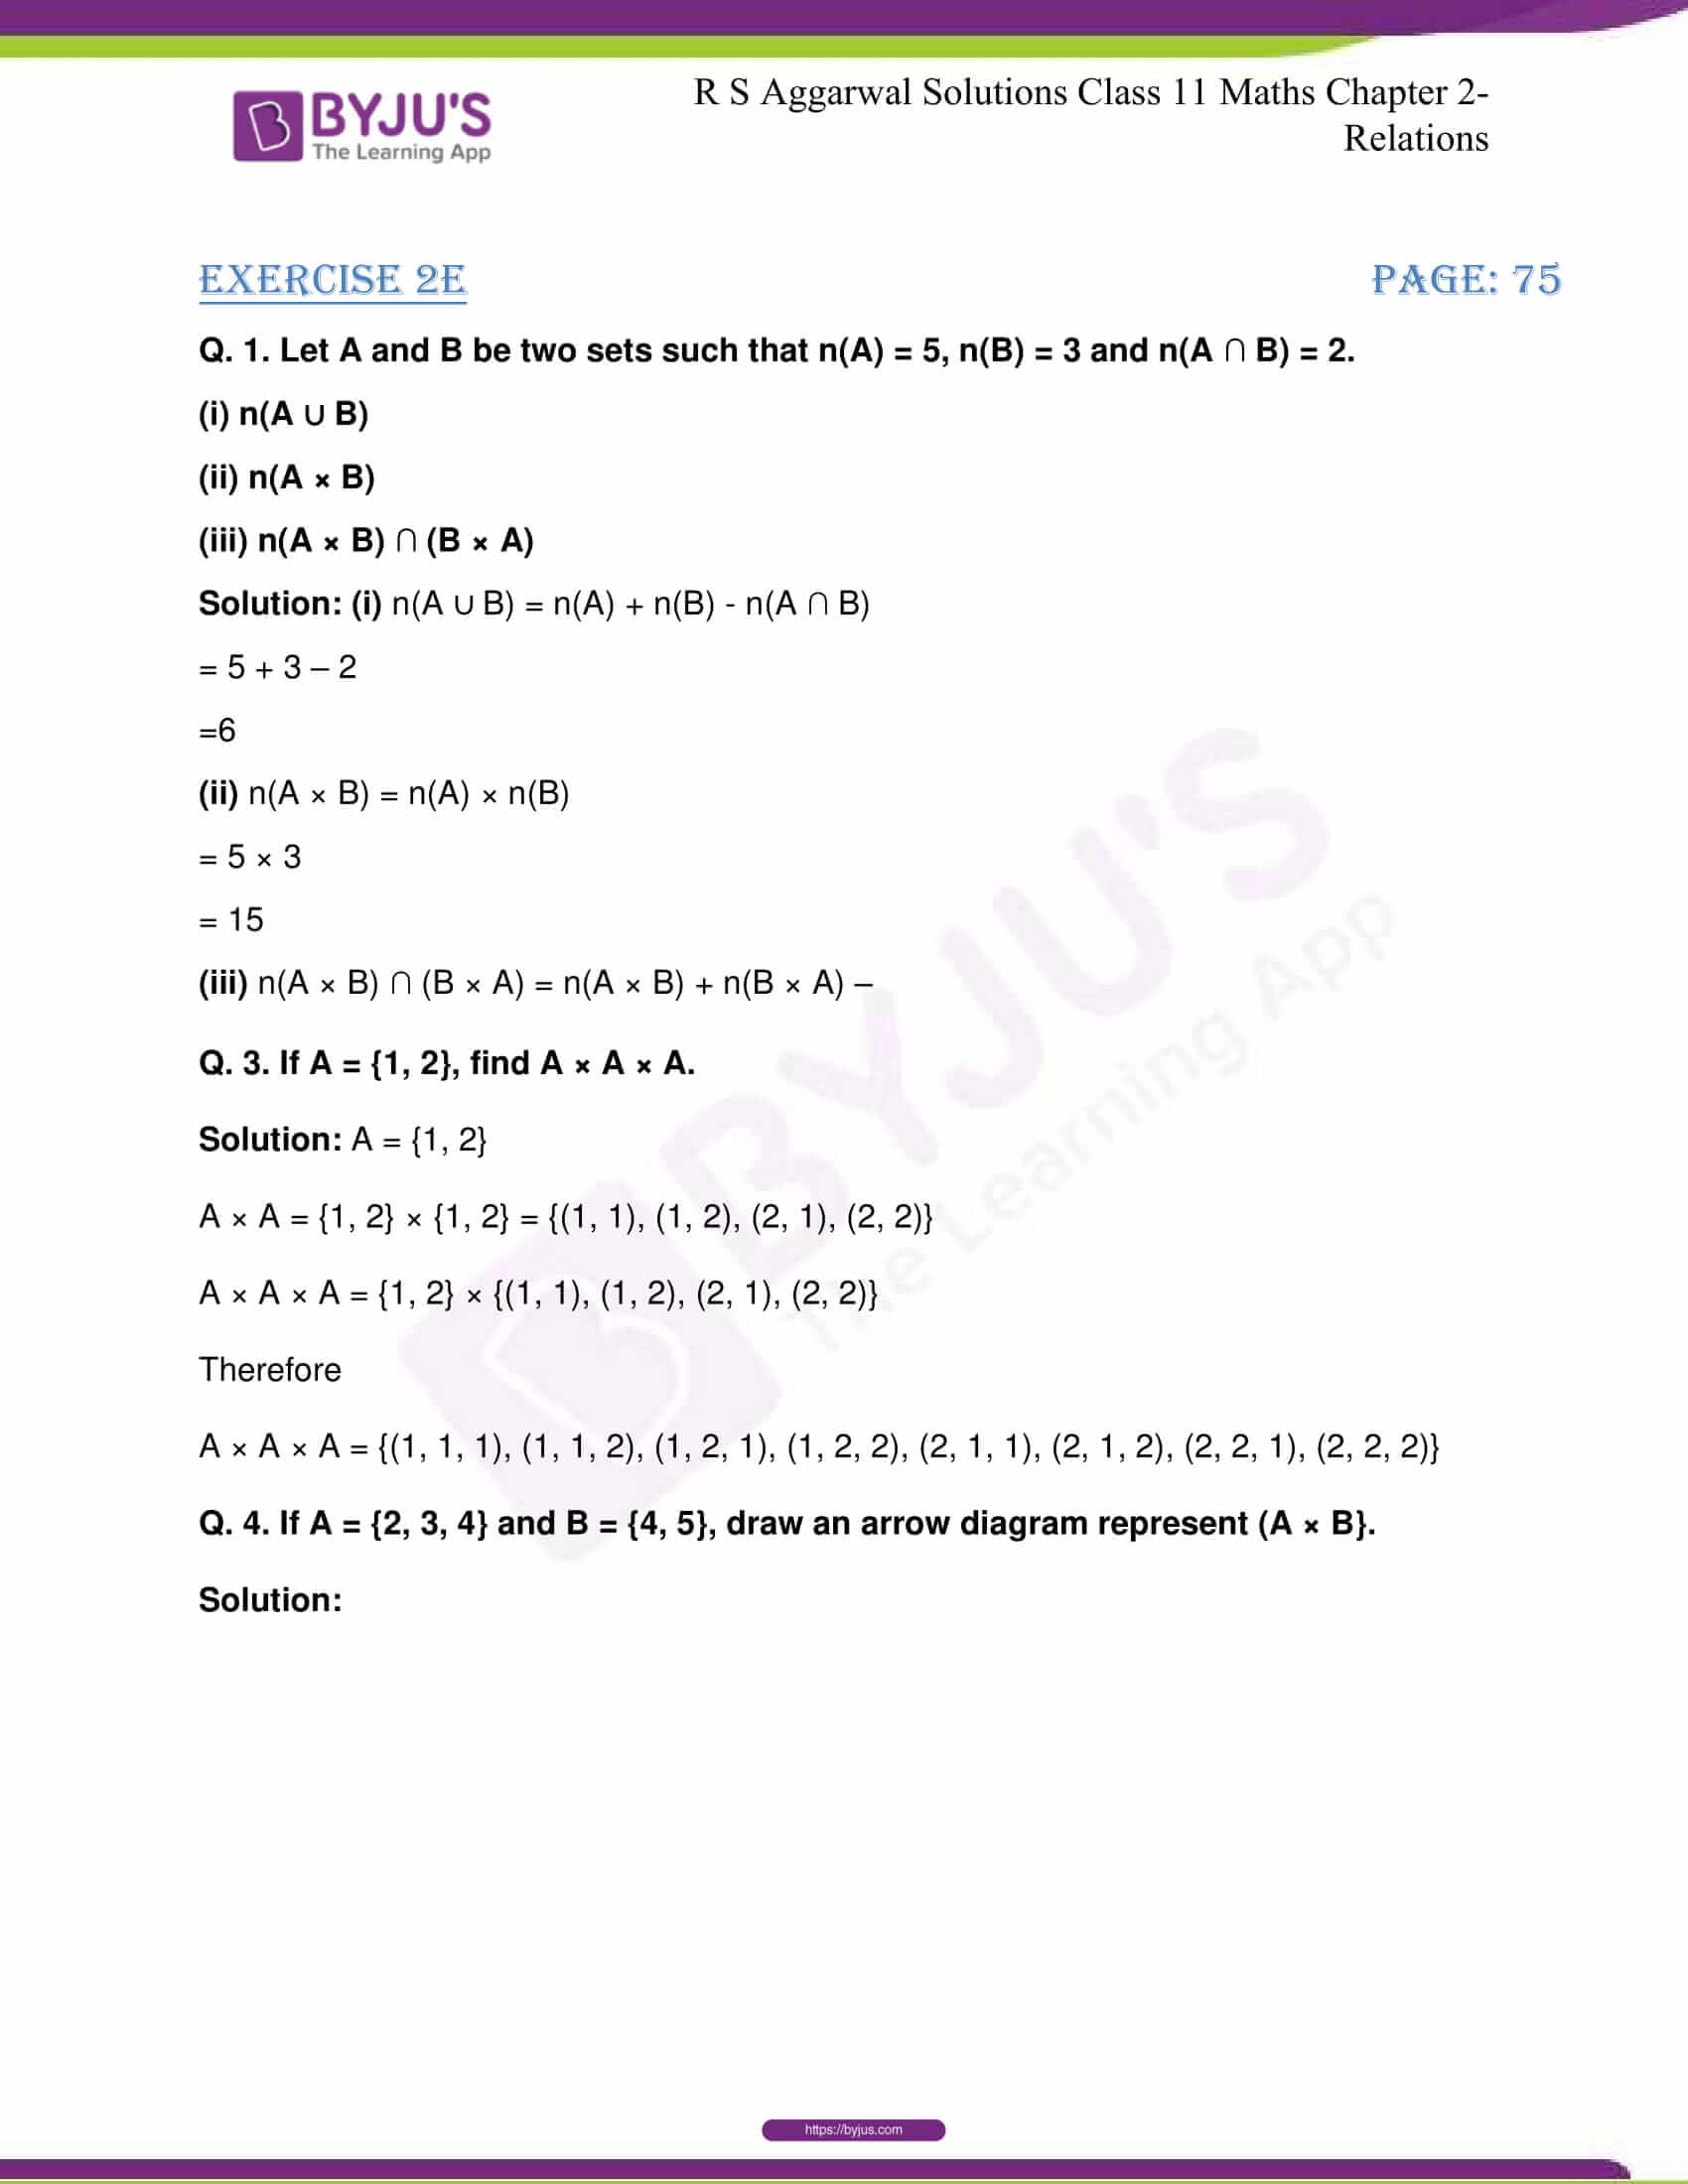 RS Aggarwal Sol Class 11 Maths Chapter 2